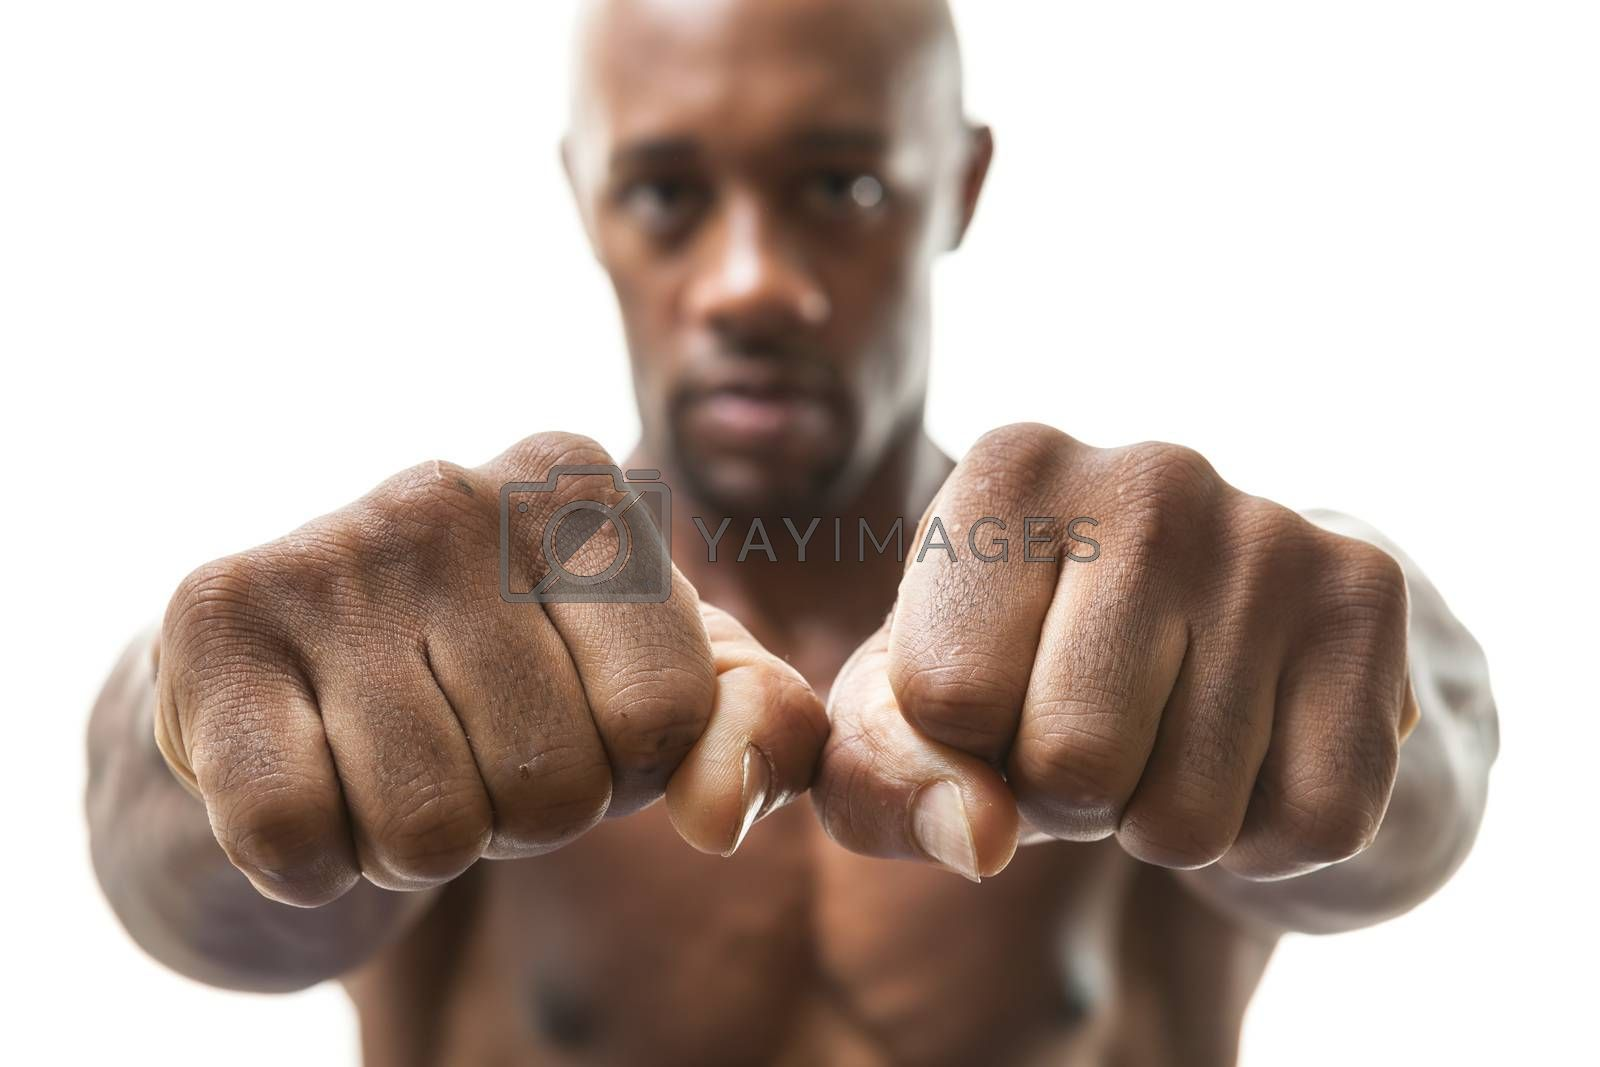 Royalty free image of Man Showing Fists and Knuckles by graficallyminded